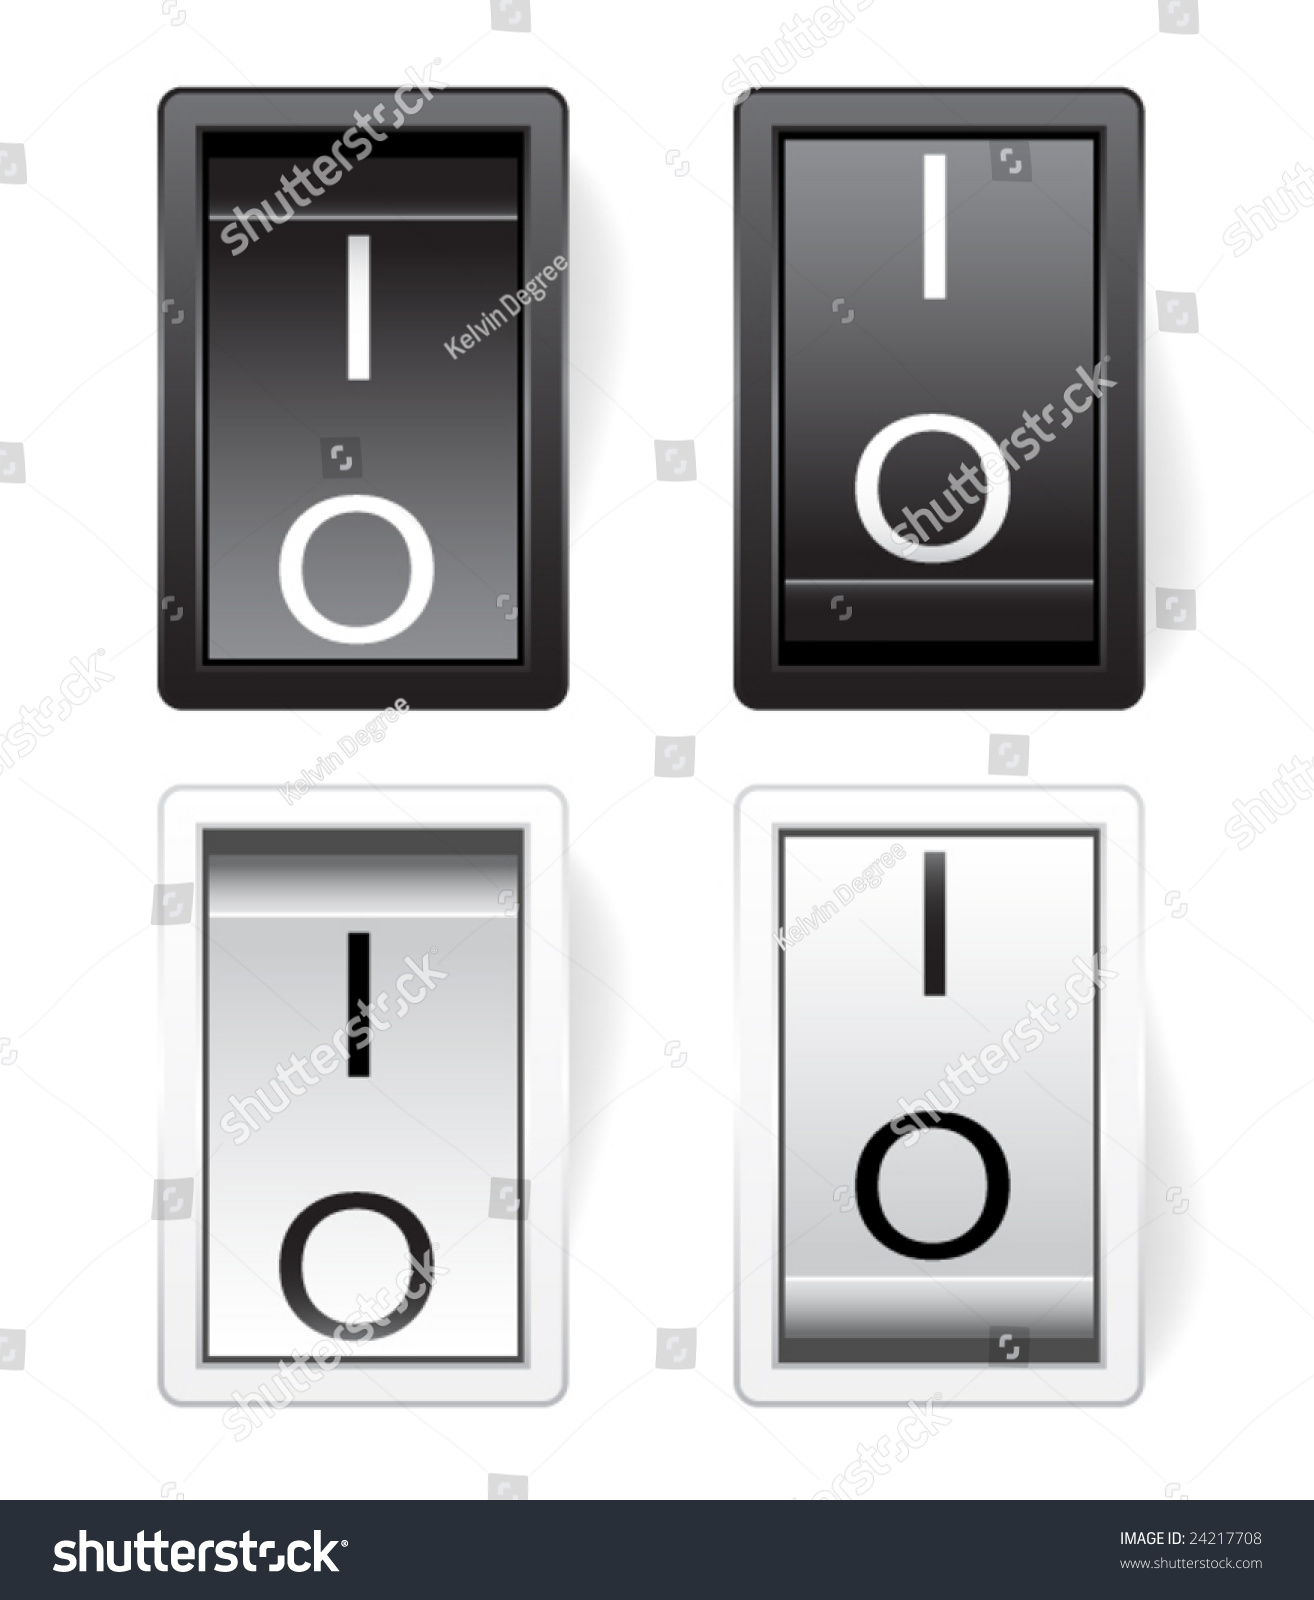 Vector Power Switch On Off Stock Vector (Royalty Free) 24217708 ...